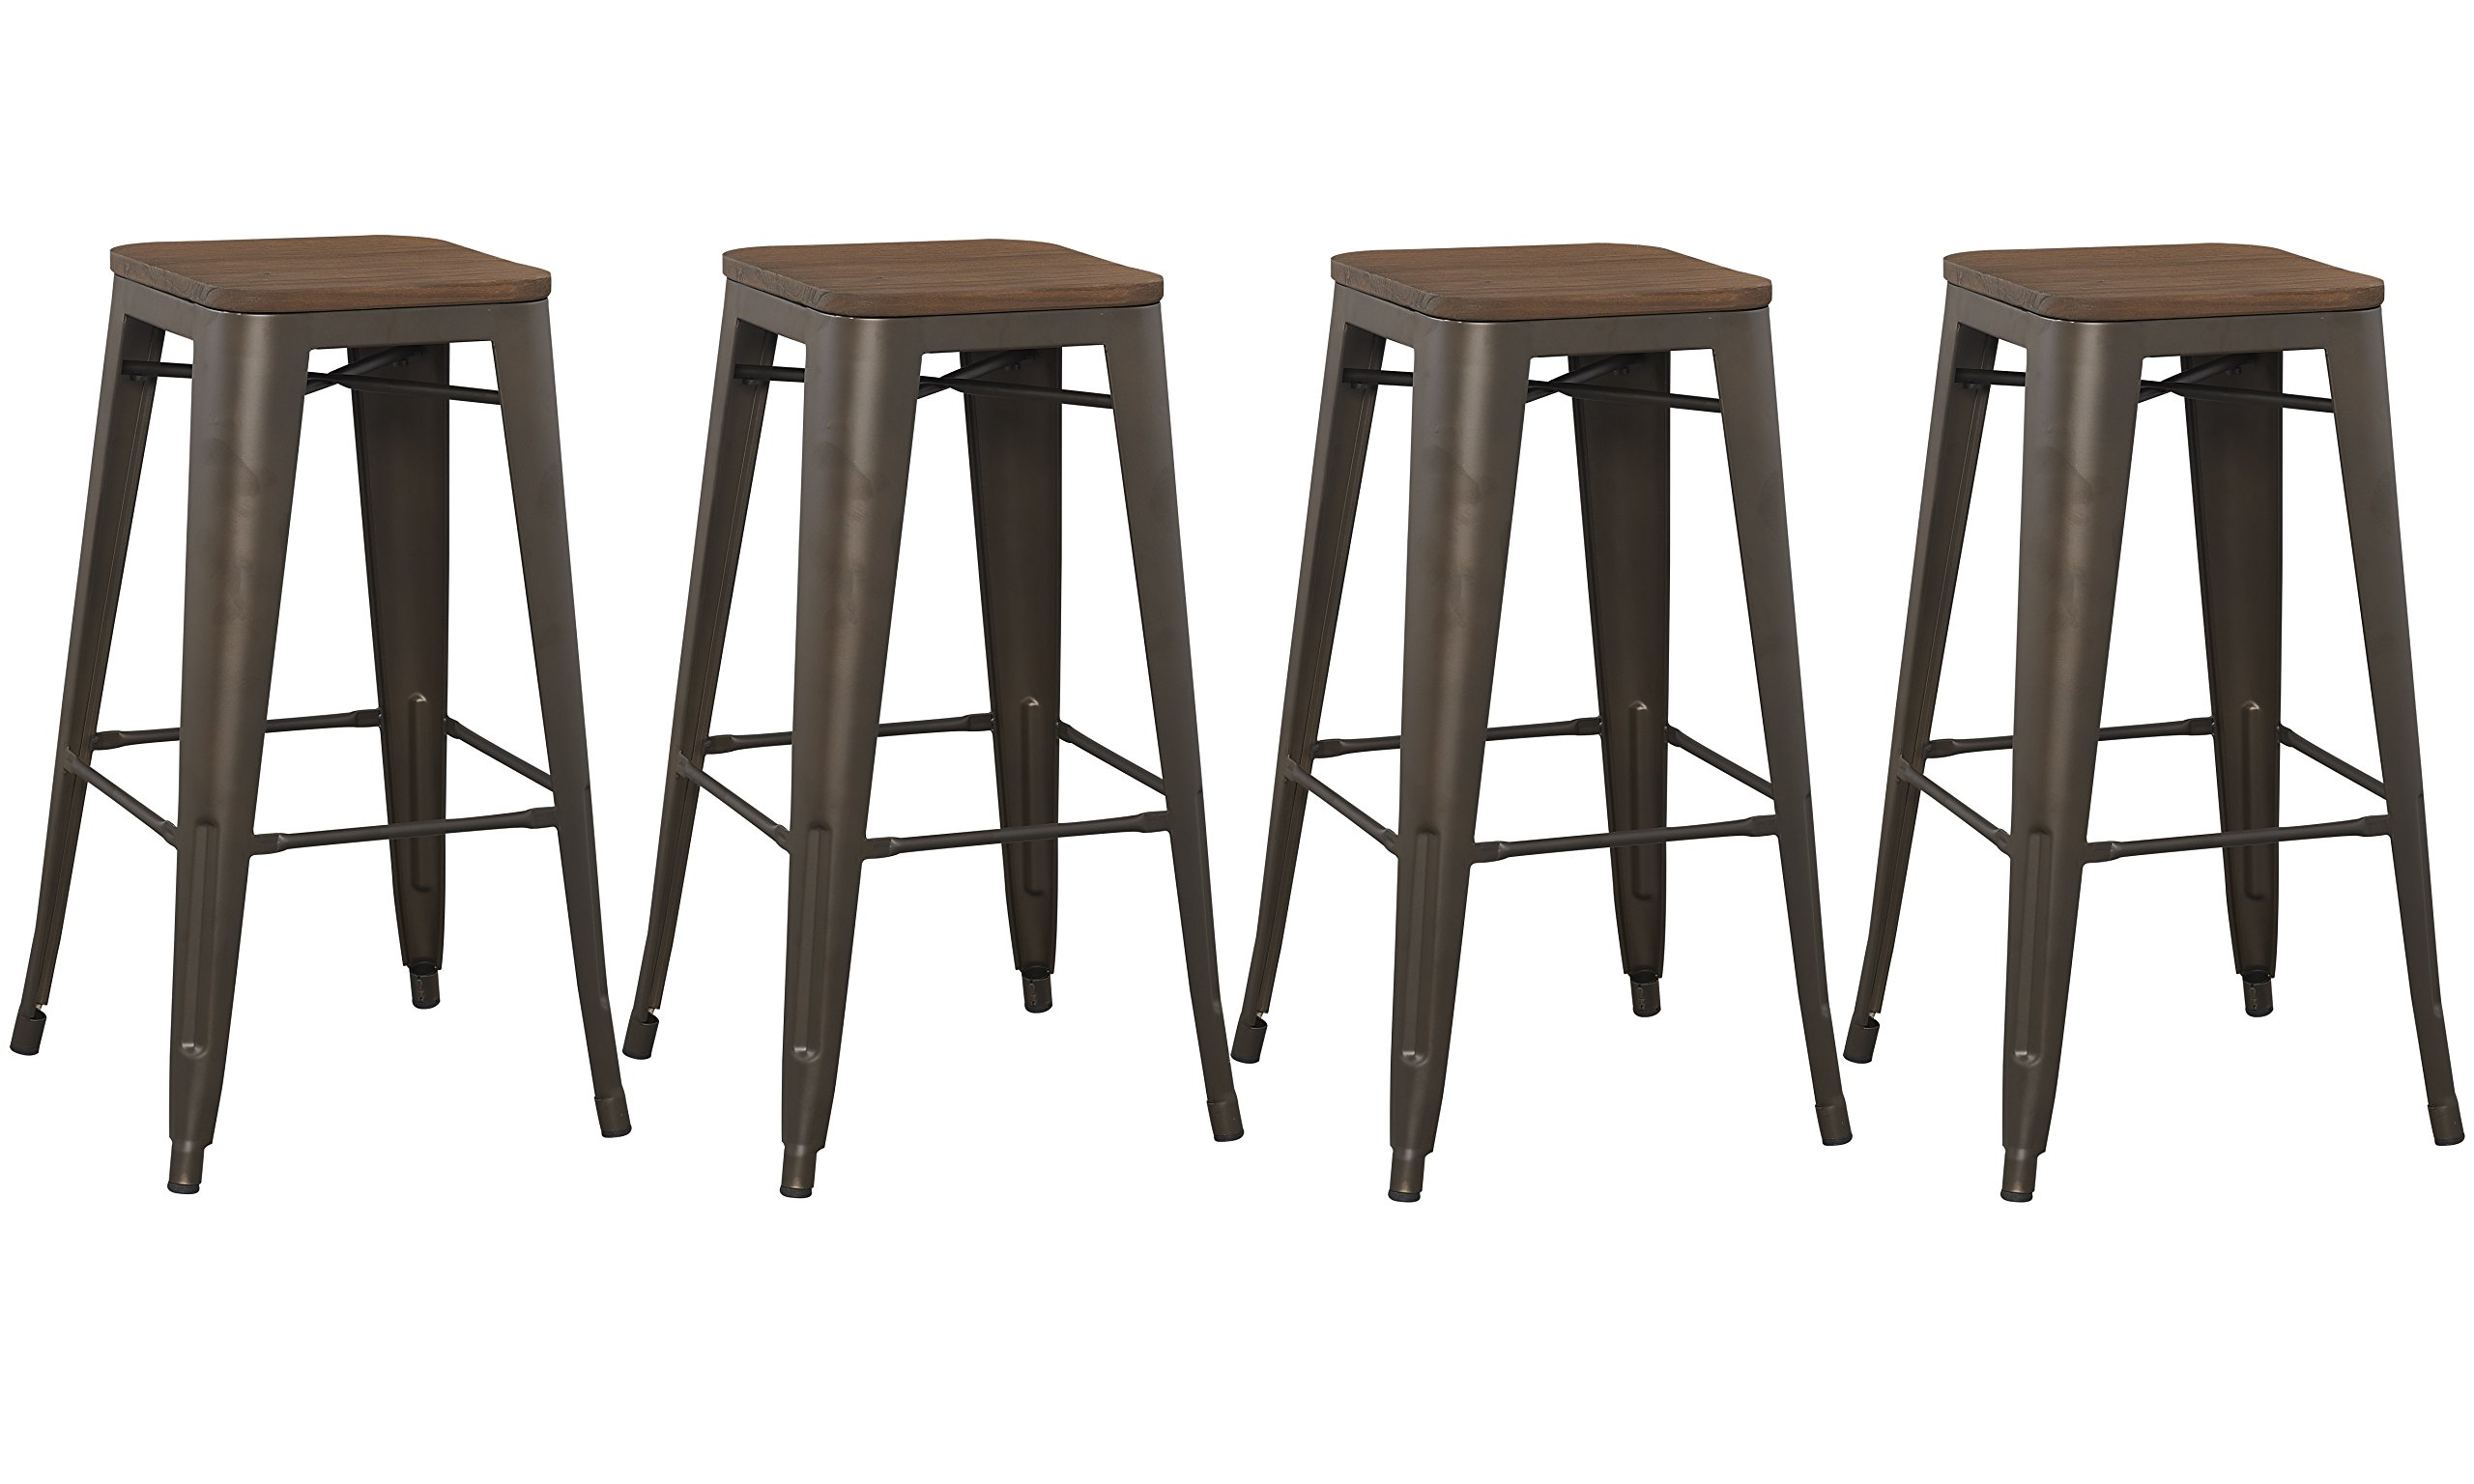 BTExpert 30'' inch Bar Stool, Modern Solid Steel Stacking Industrial Rustic Metal with Wood Top set of 4 by BTEXPERT